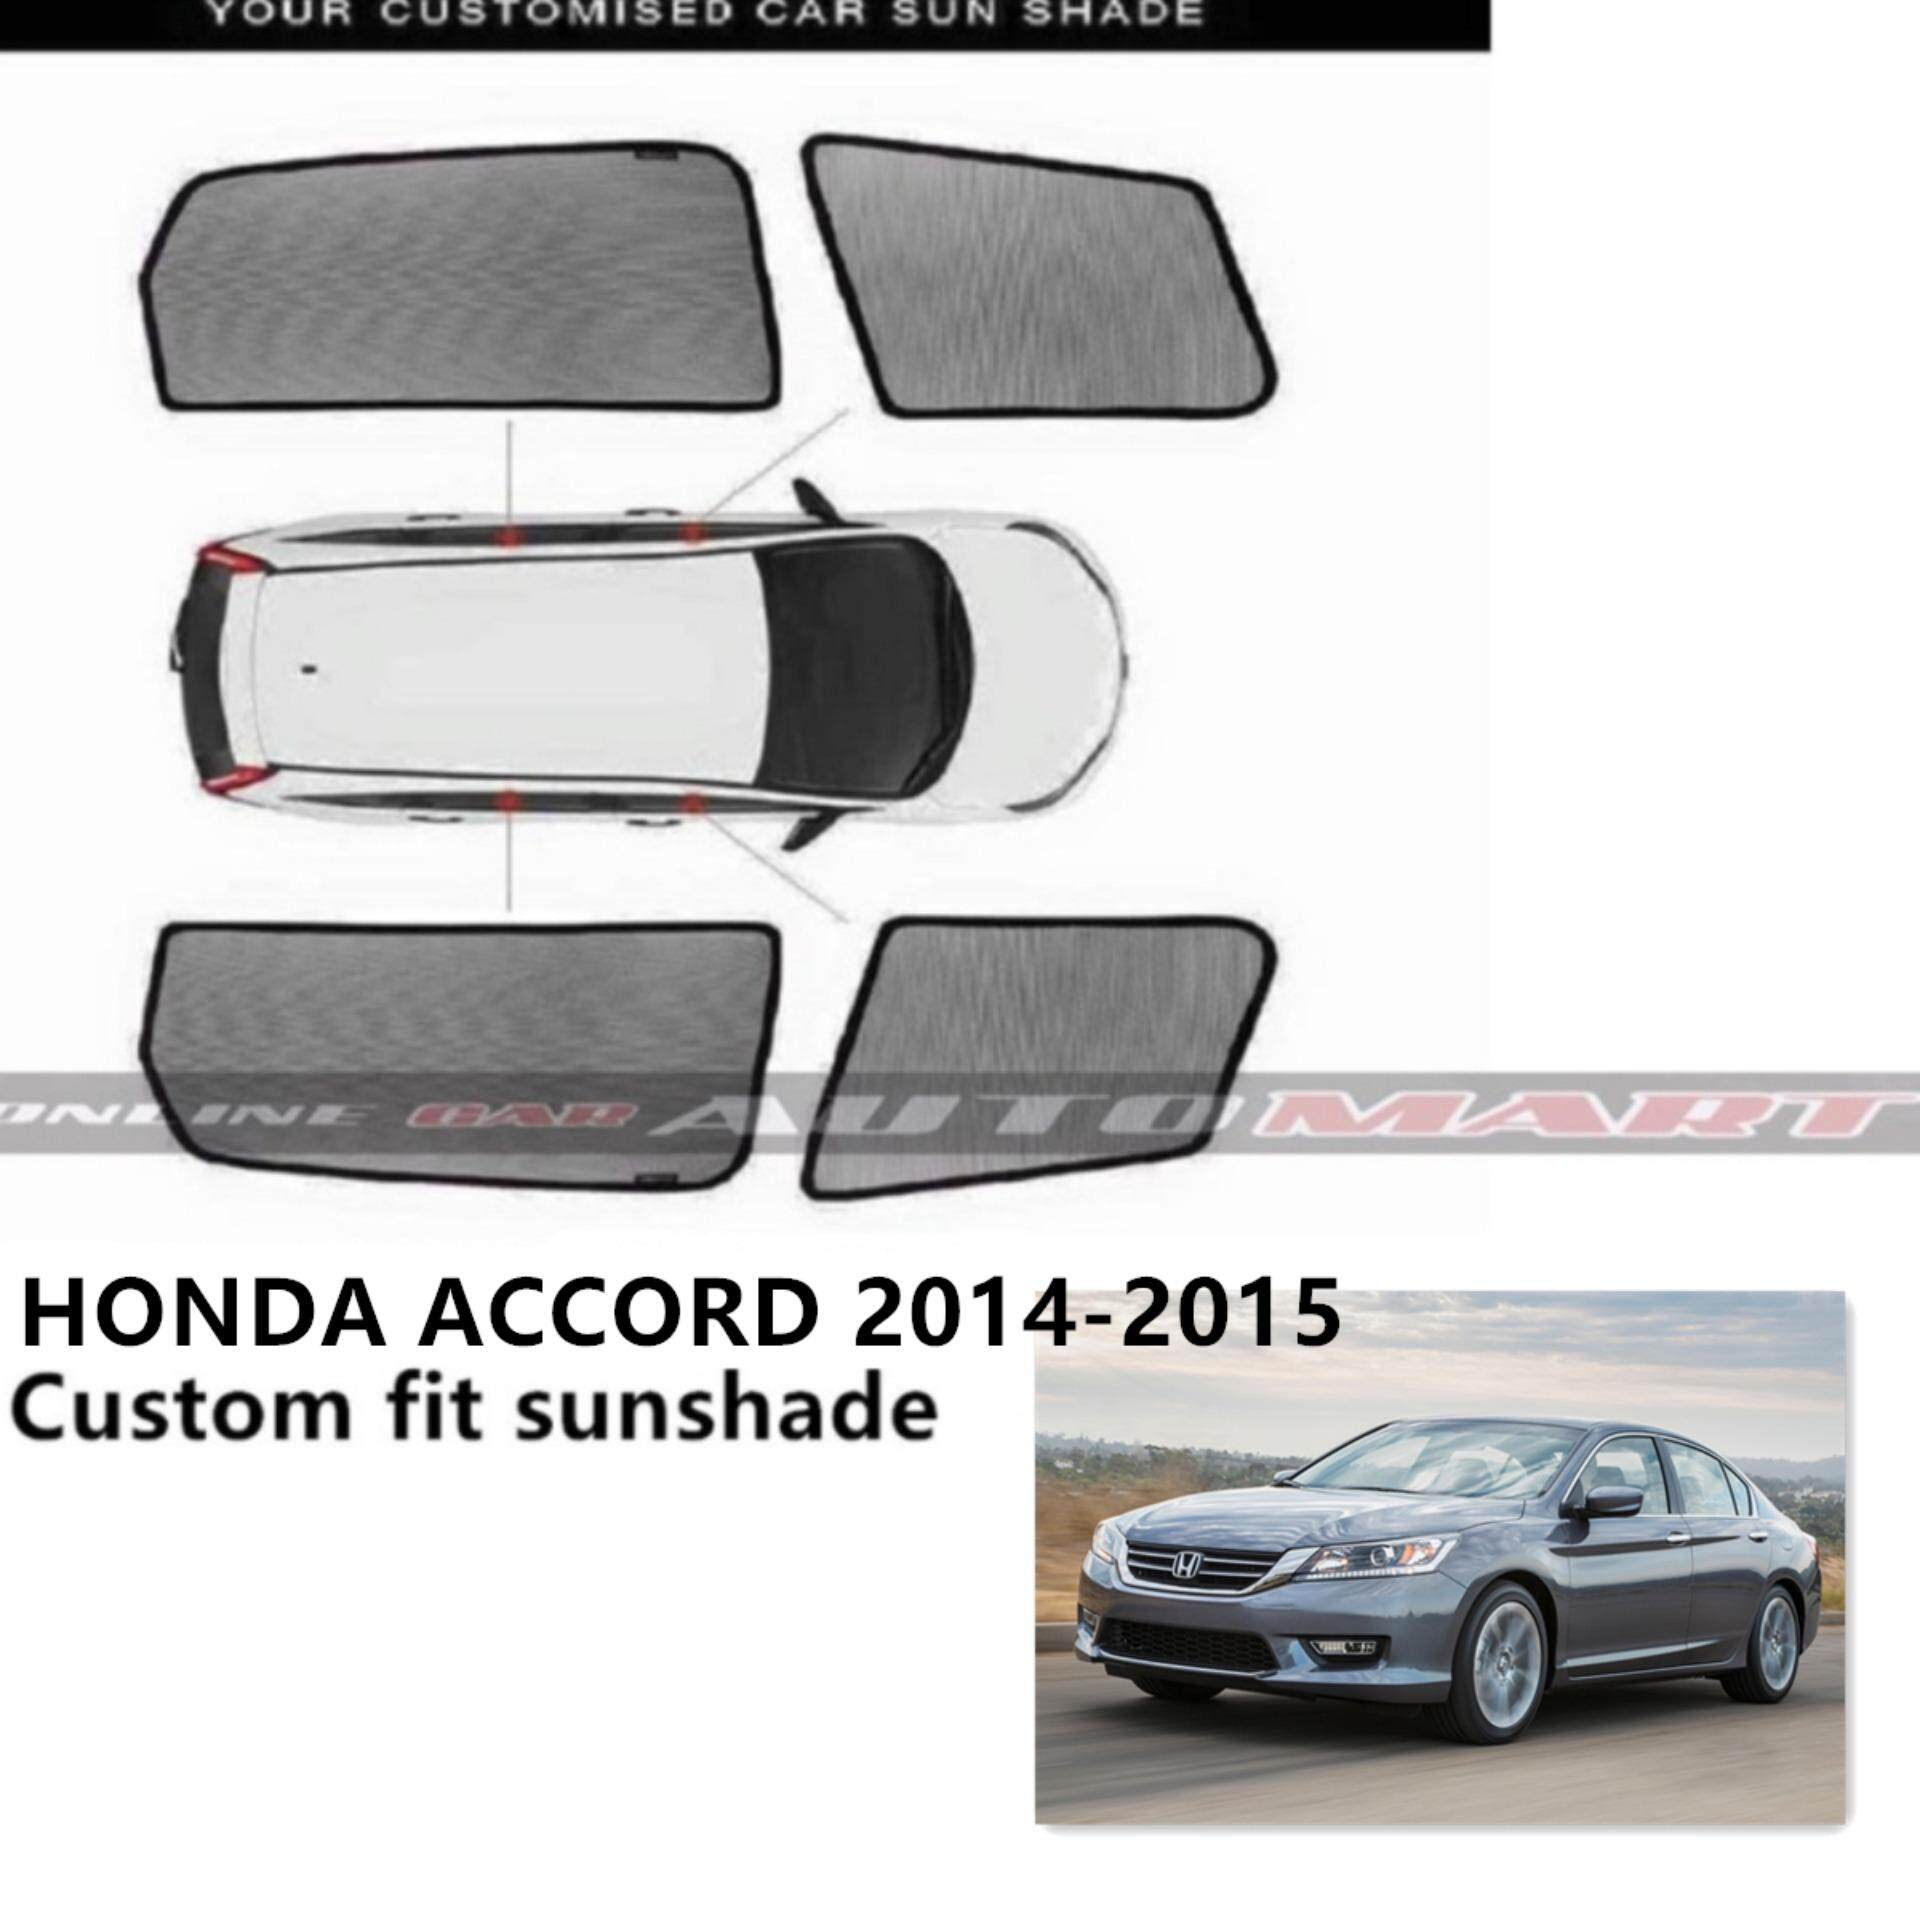 Custom Fit OEM Sunshades/ Sun shades for Honda Accord YR 2014-2015 - 4pcs